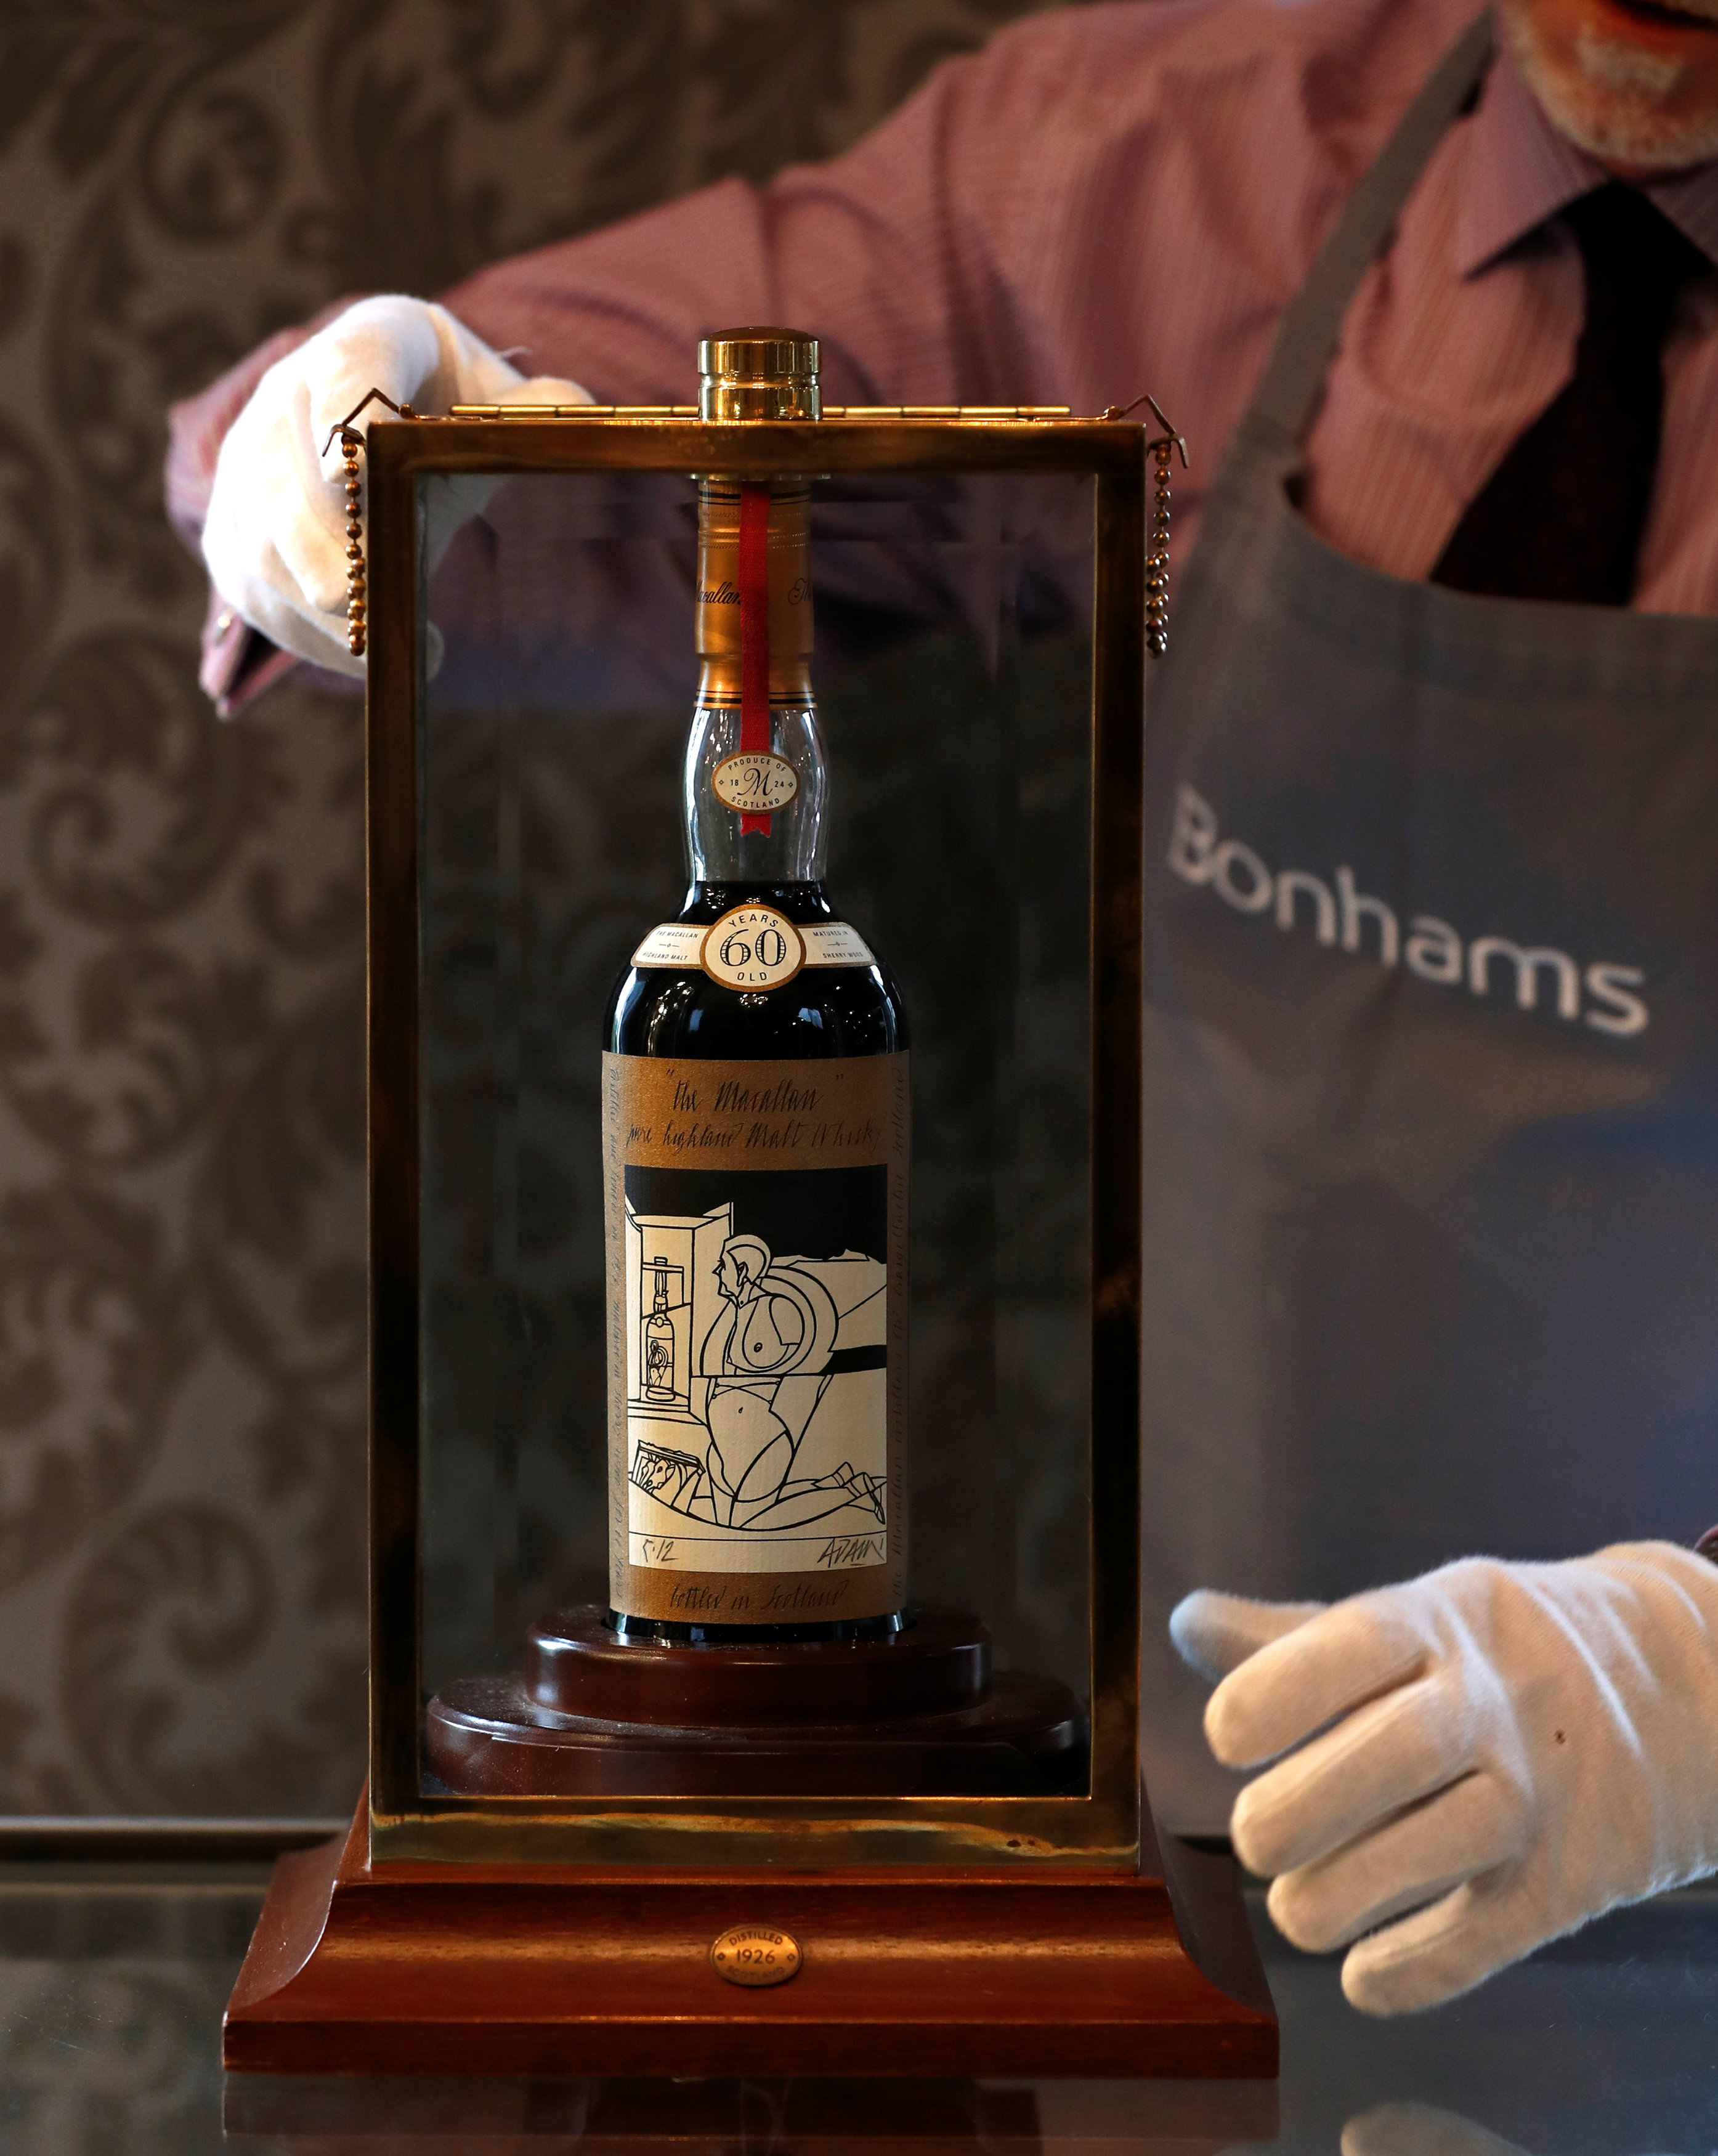 A 60-year old The Macallan Valerio Adami 1926 was auctioned for a record amount at Bonhams in Edinburgh, Scotland